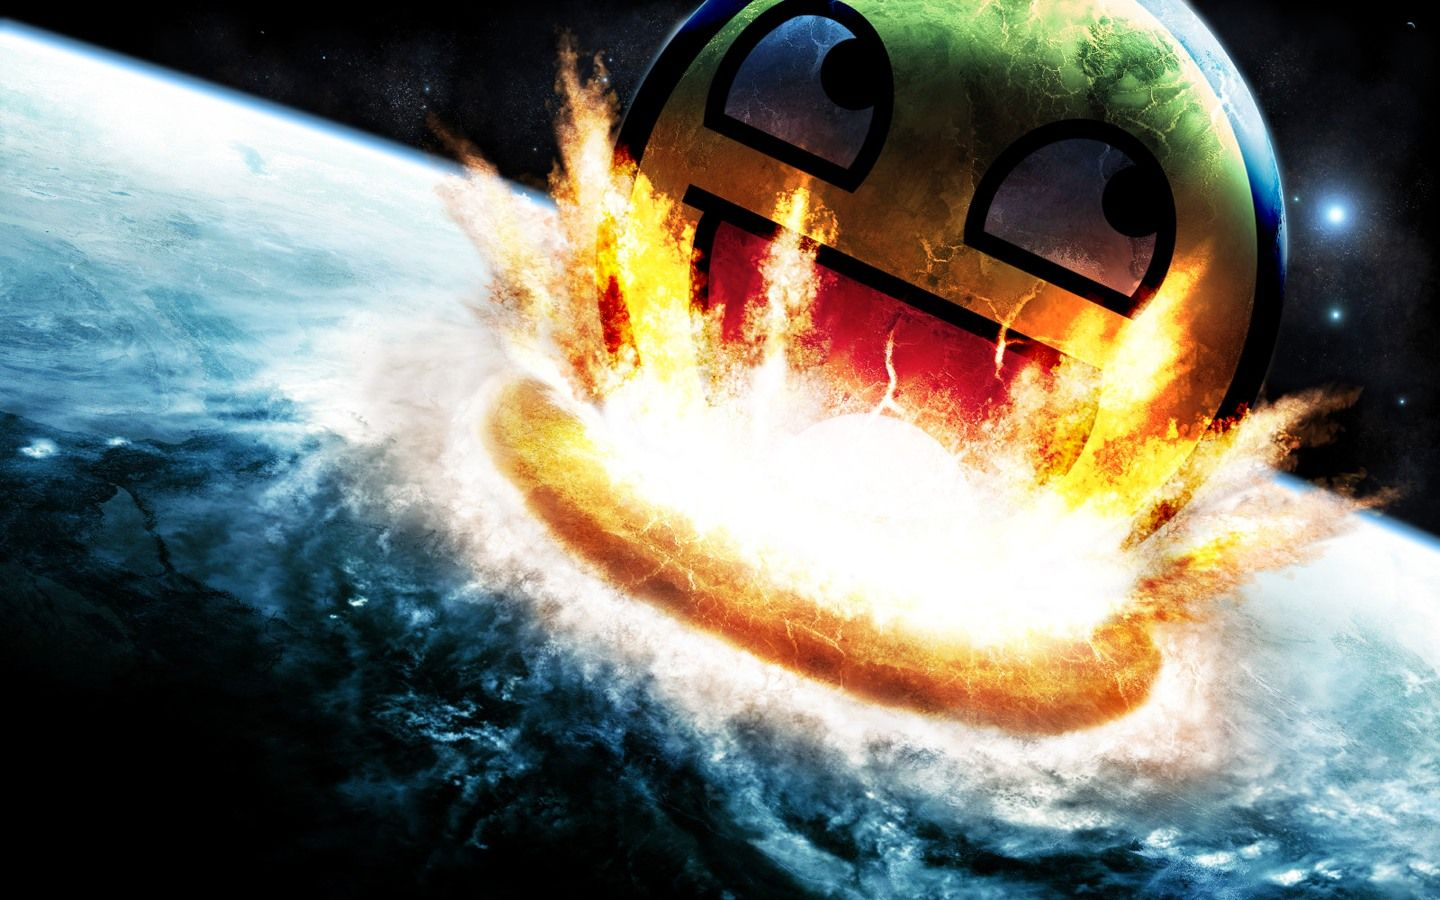 Download Smiley Epic Free Wallpaper 1440x900 Full HD